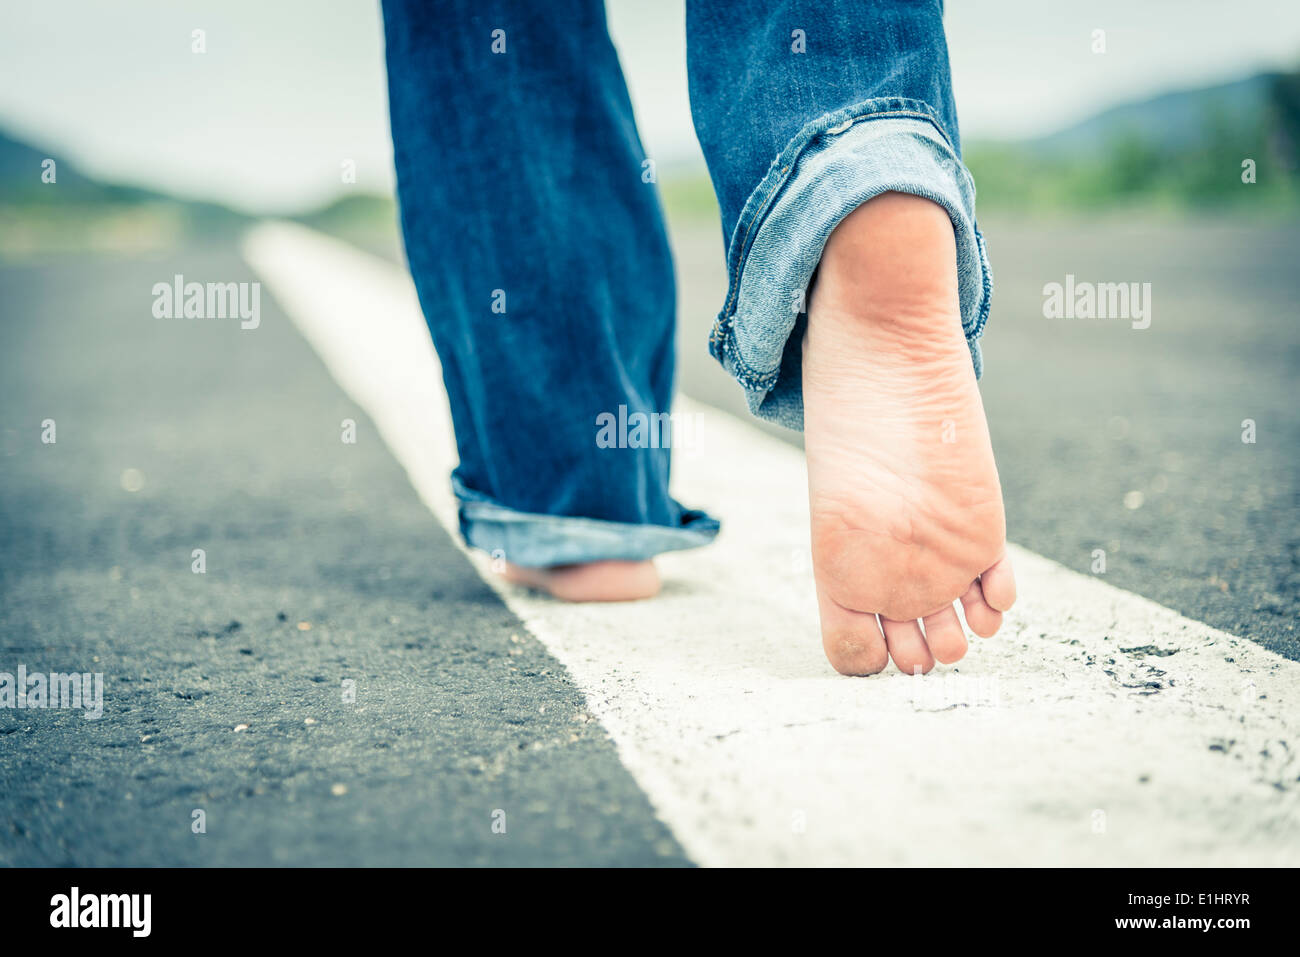 Young woman walking barefoot on centre line of empty street, partial view - Stock Image